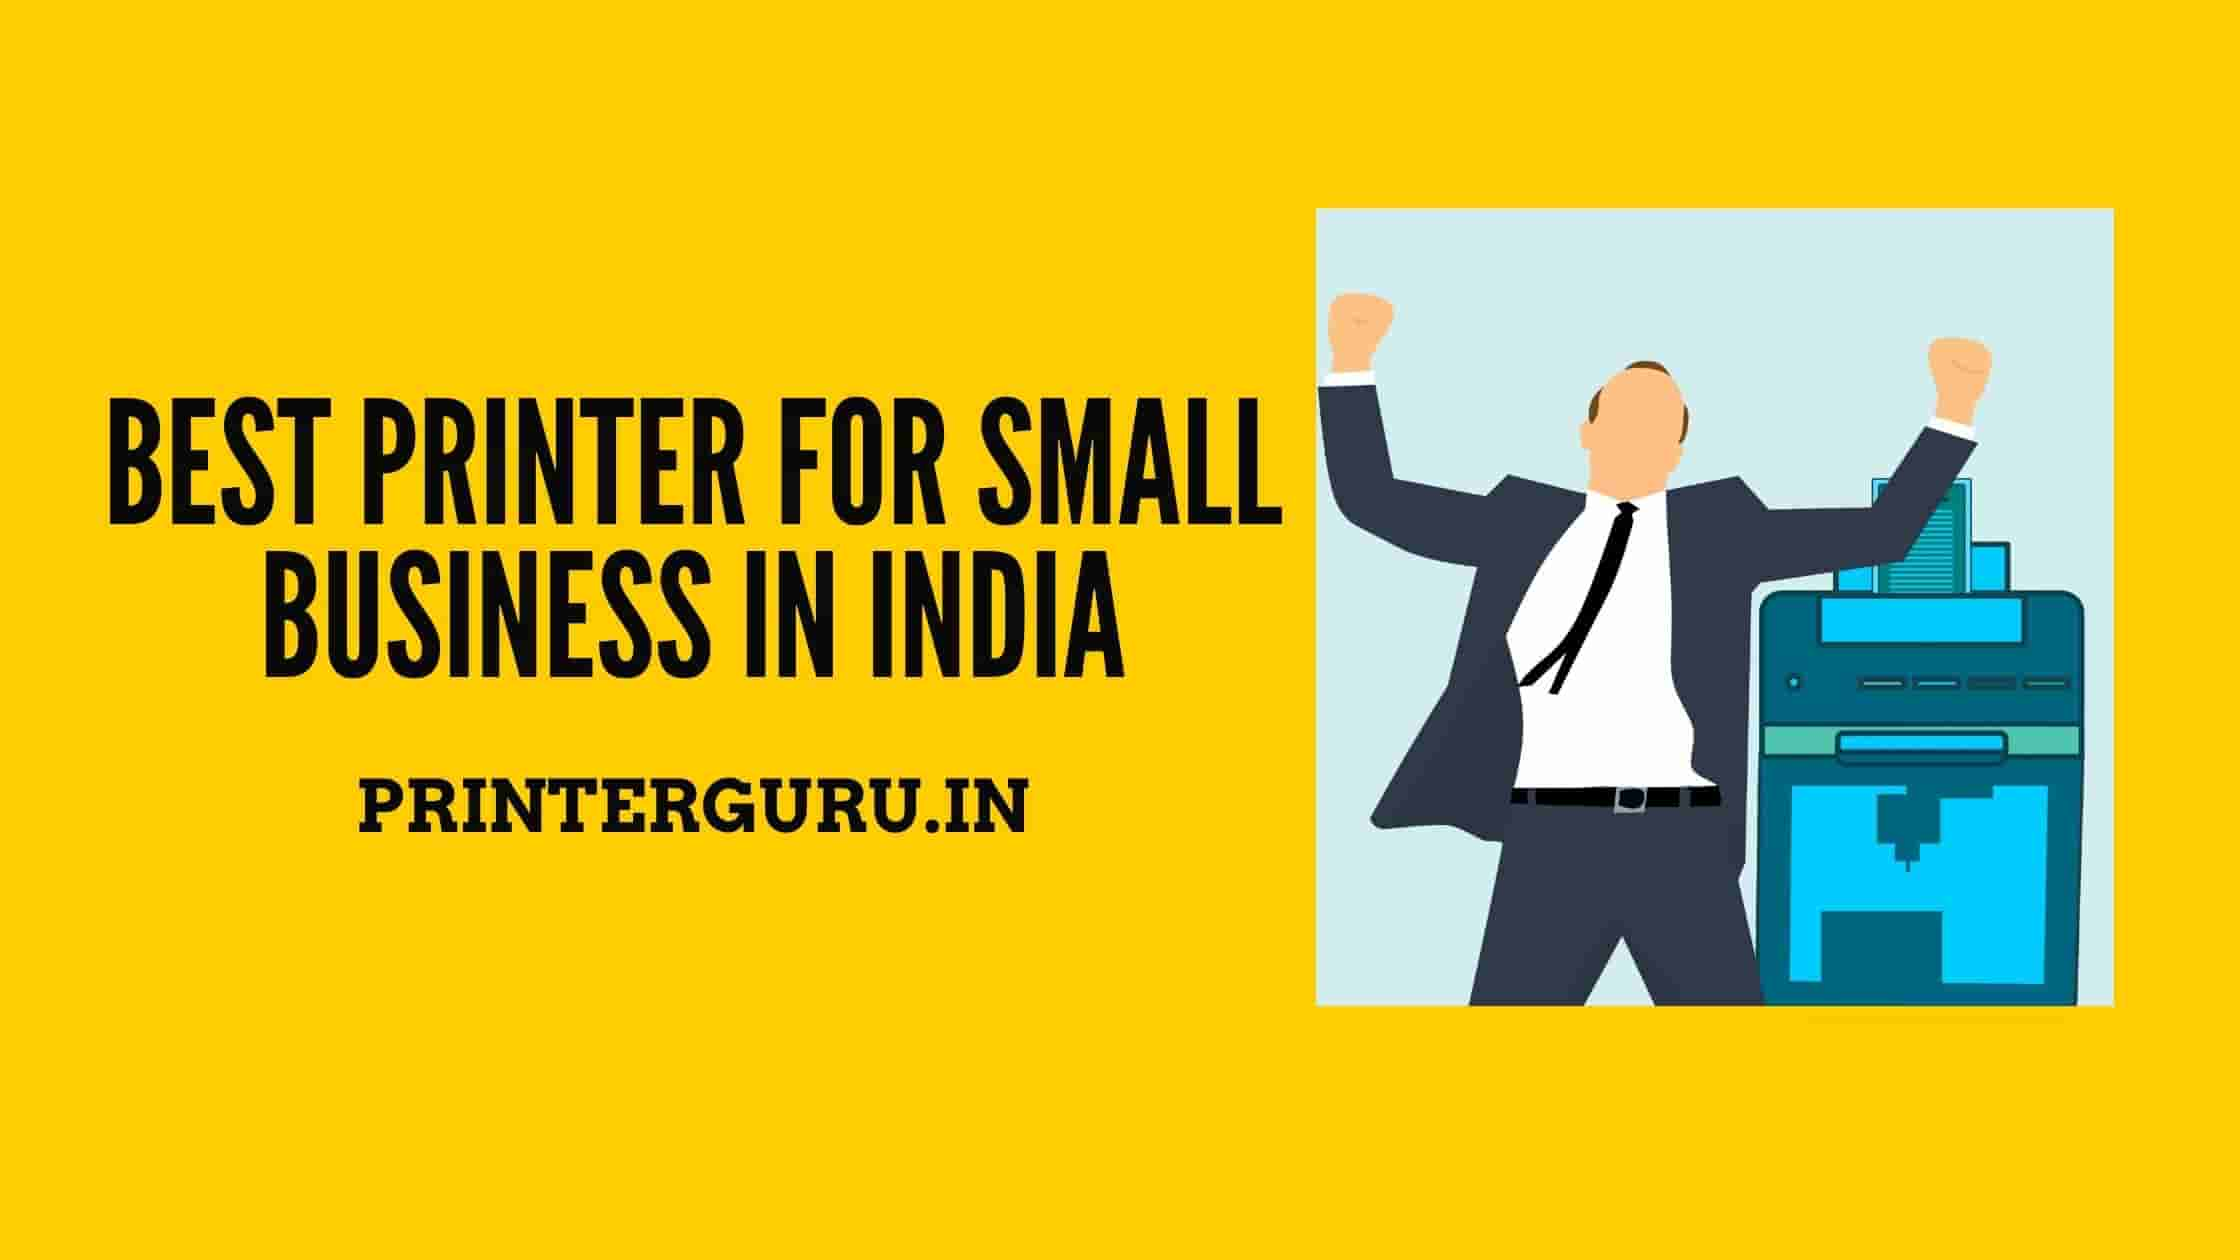 Best Printer for Small Business In India